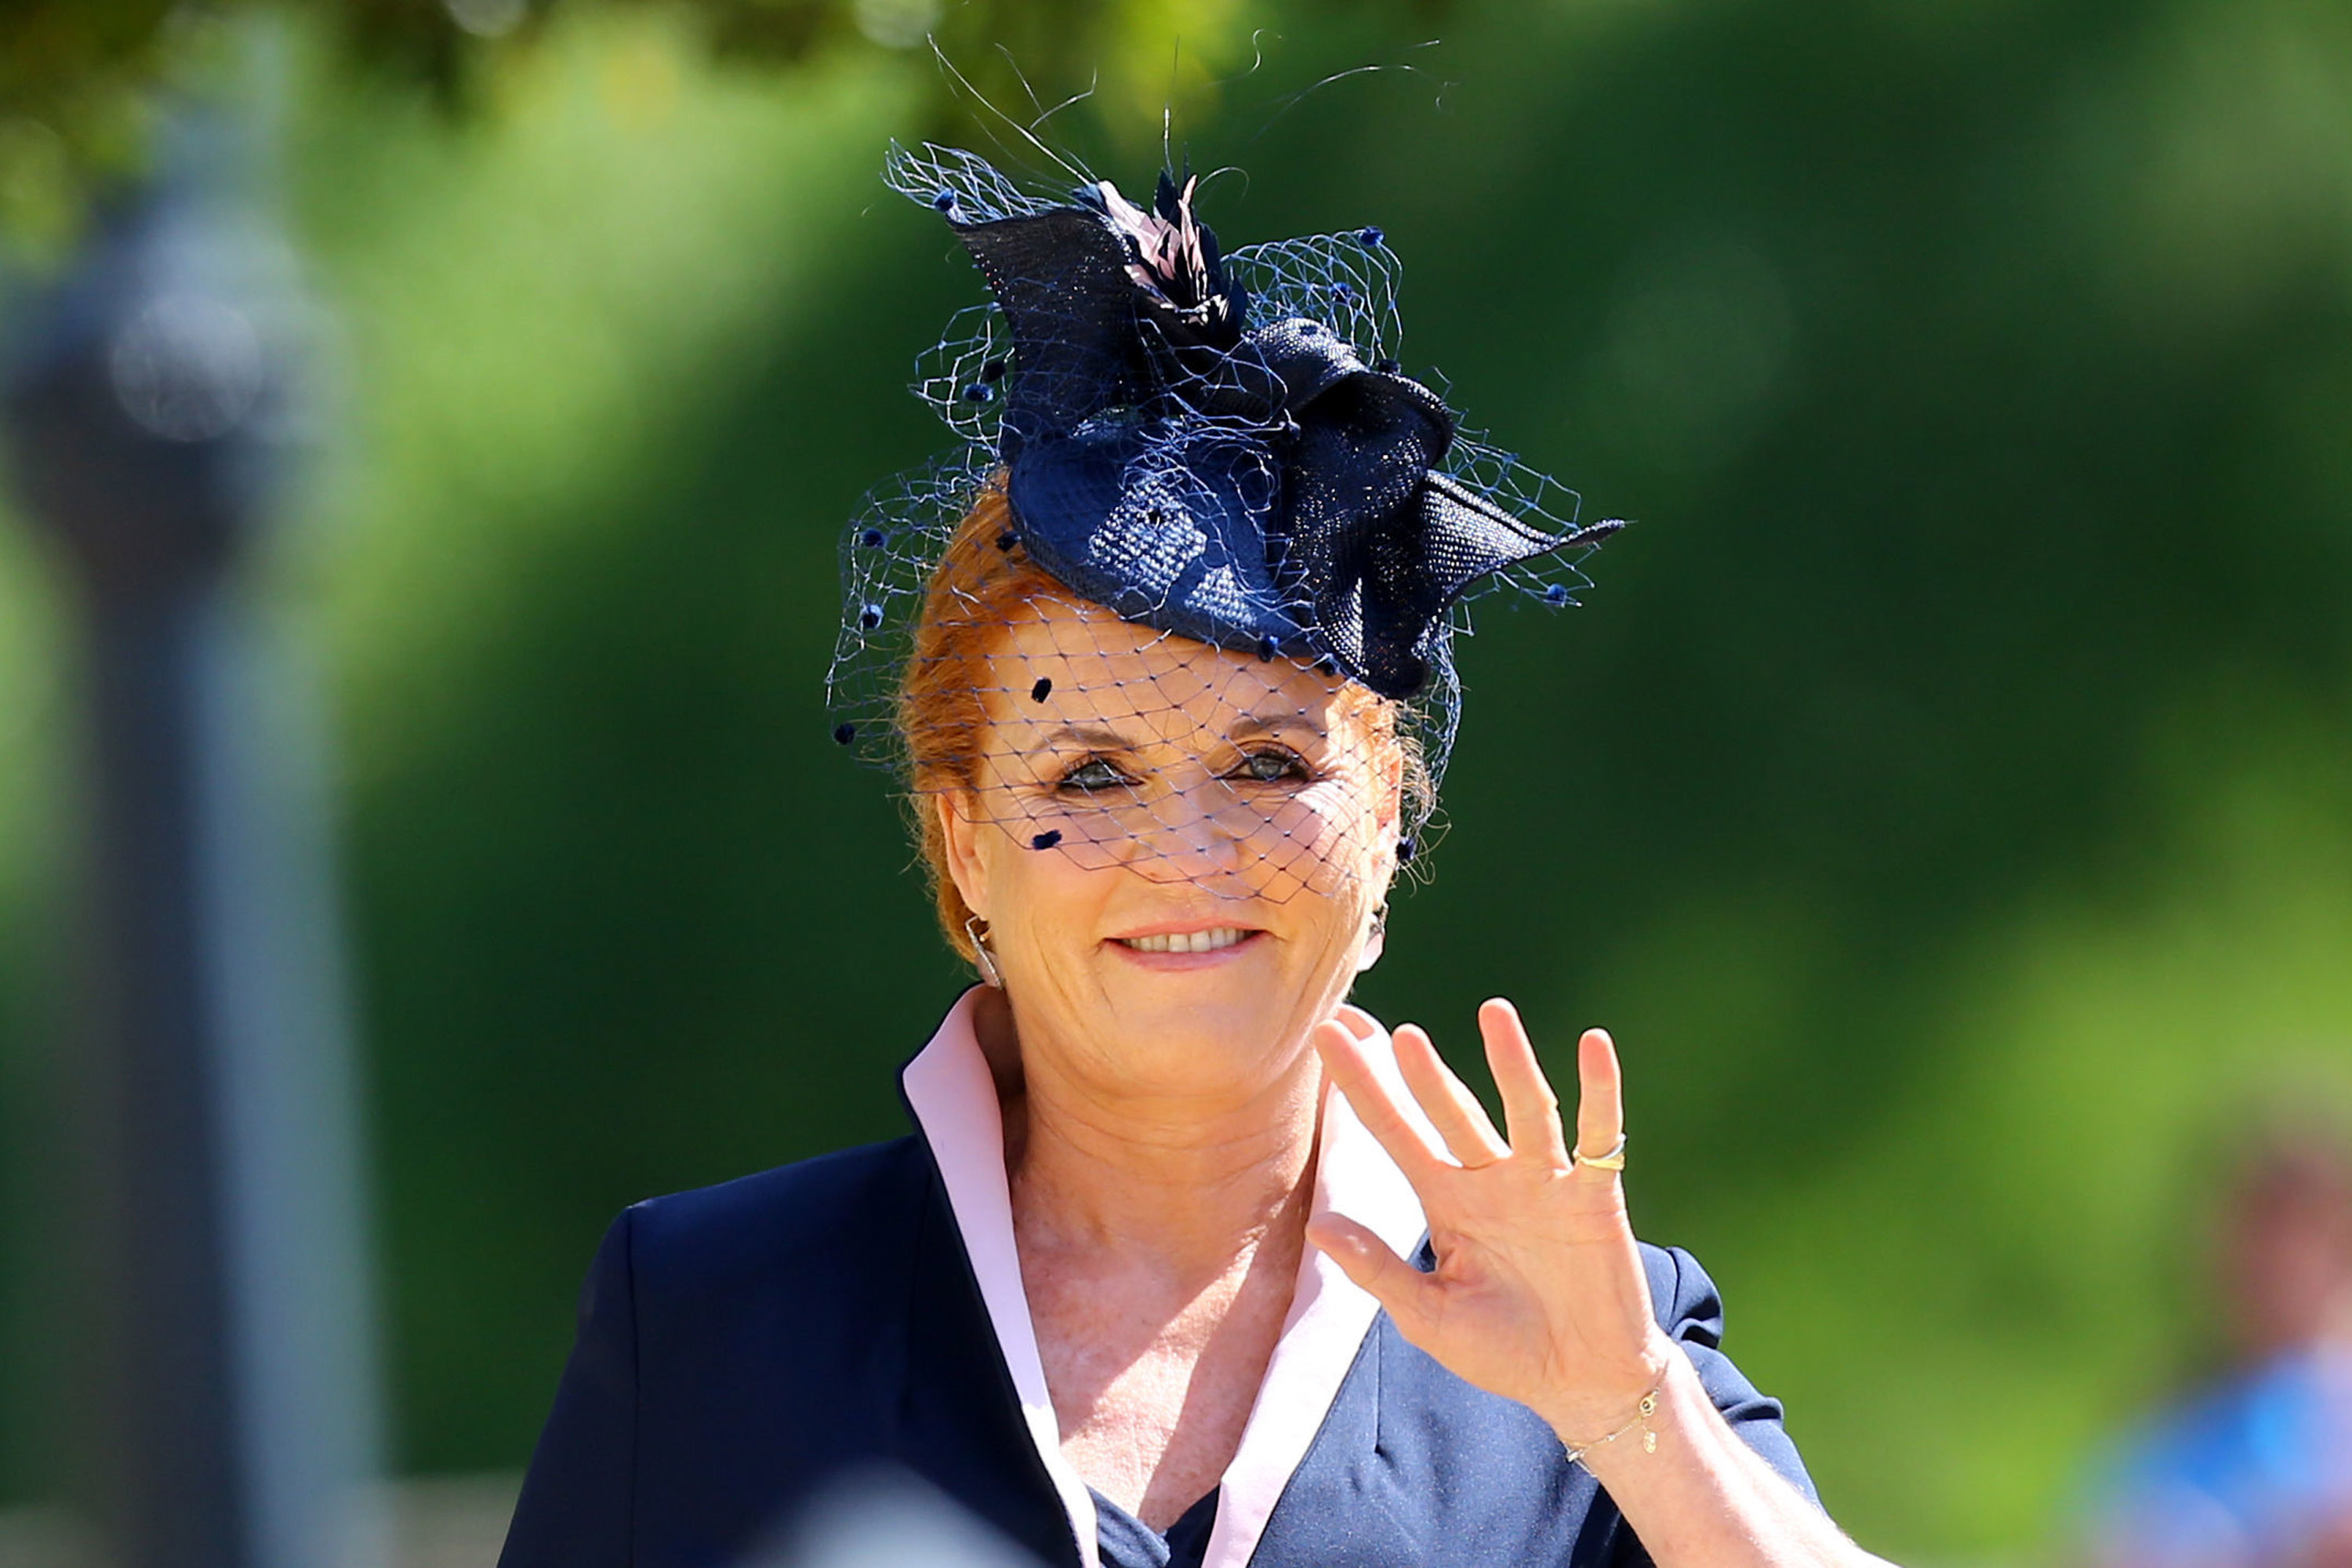 Sarah, Duchess of York arrives at St George's Chapel at Windsor Castle before the wedding of Prince Harry to Meghan Markle on May 19, 2018 in Windsor, England. (Photo by Gareth Fuller - WPA Pool/Getty Images)